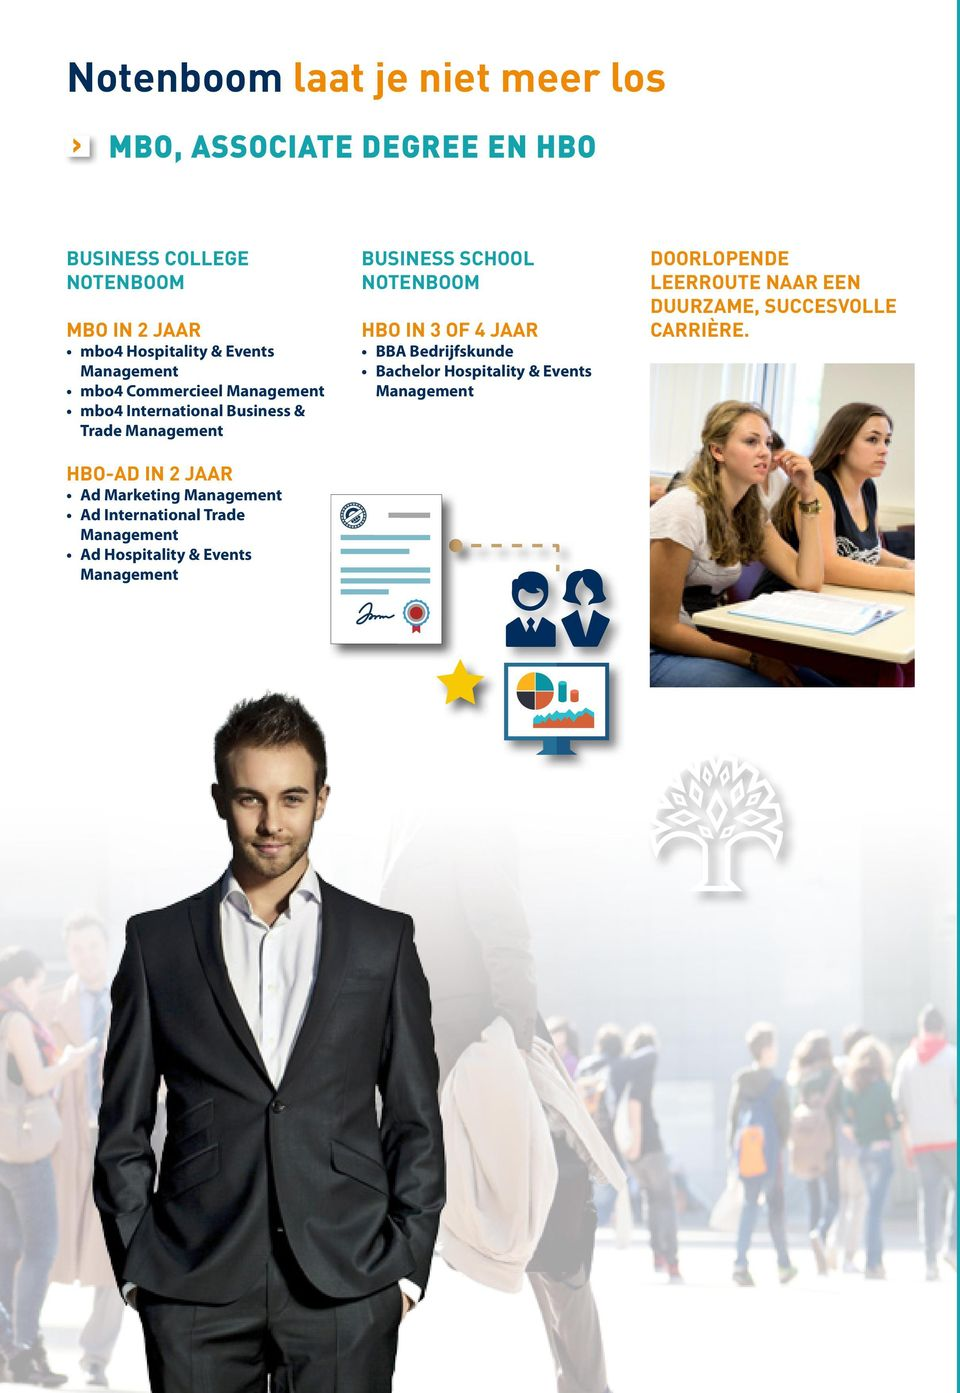 Marketing Ad International Trade Ad Hospitality & Events BUSINESS SCHOOL NOTENBOOM hbo in 3 of 4 jaar